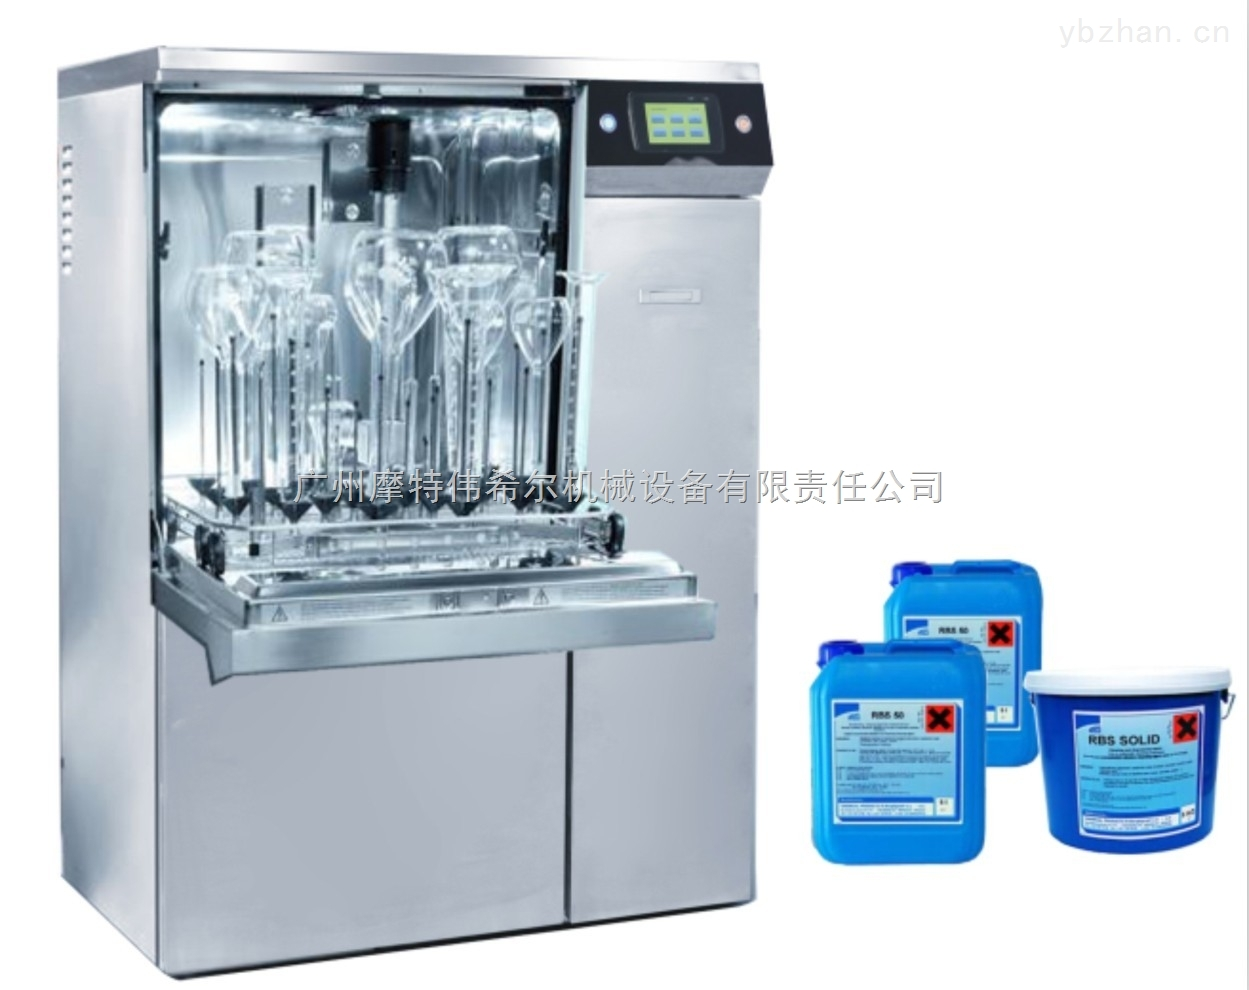 Multwasher玻璃器皿清洗机